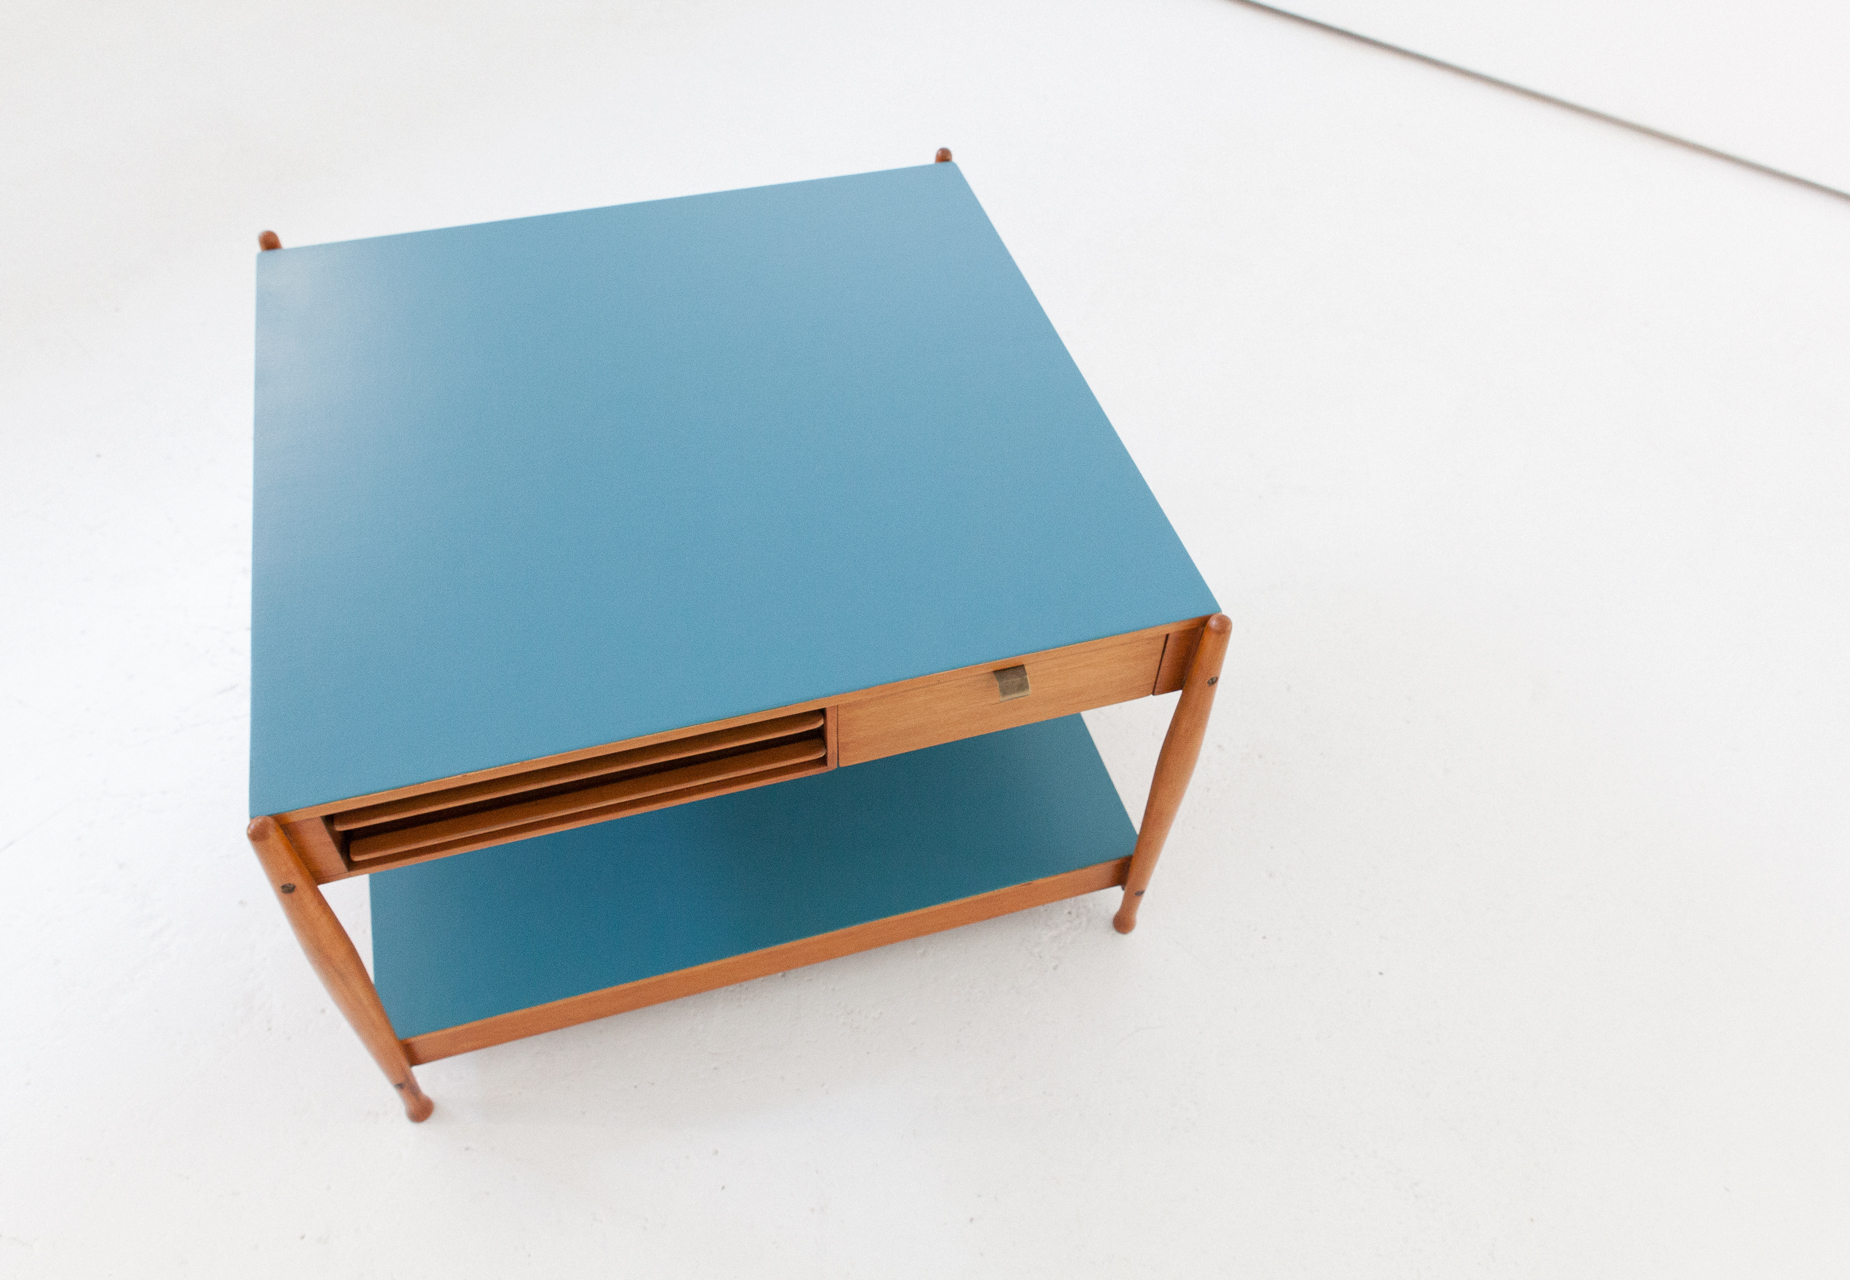 Cool low square coffee table